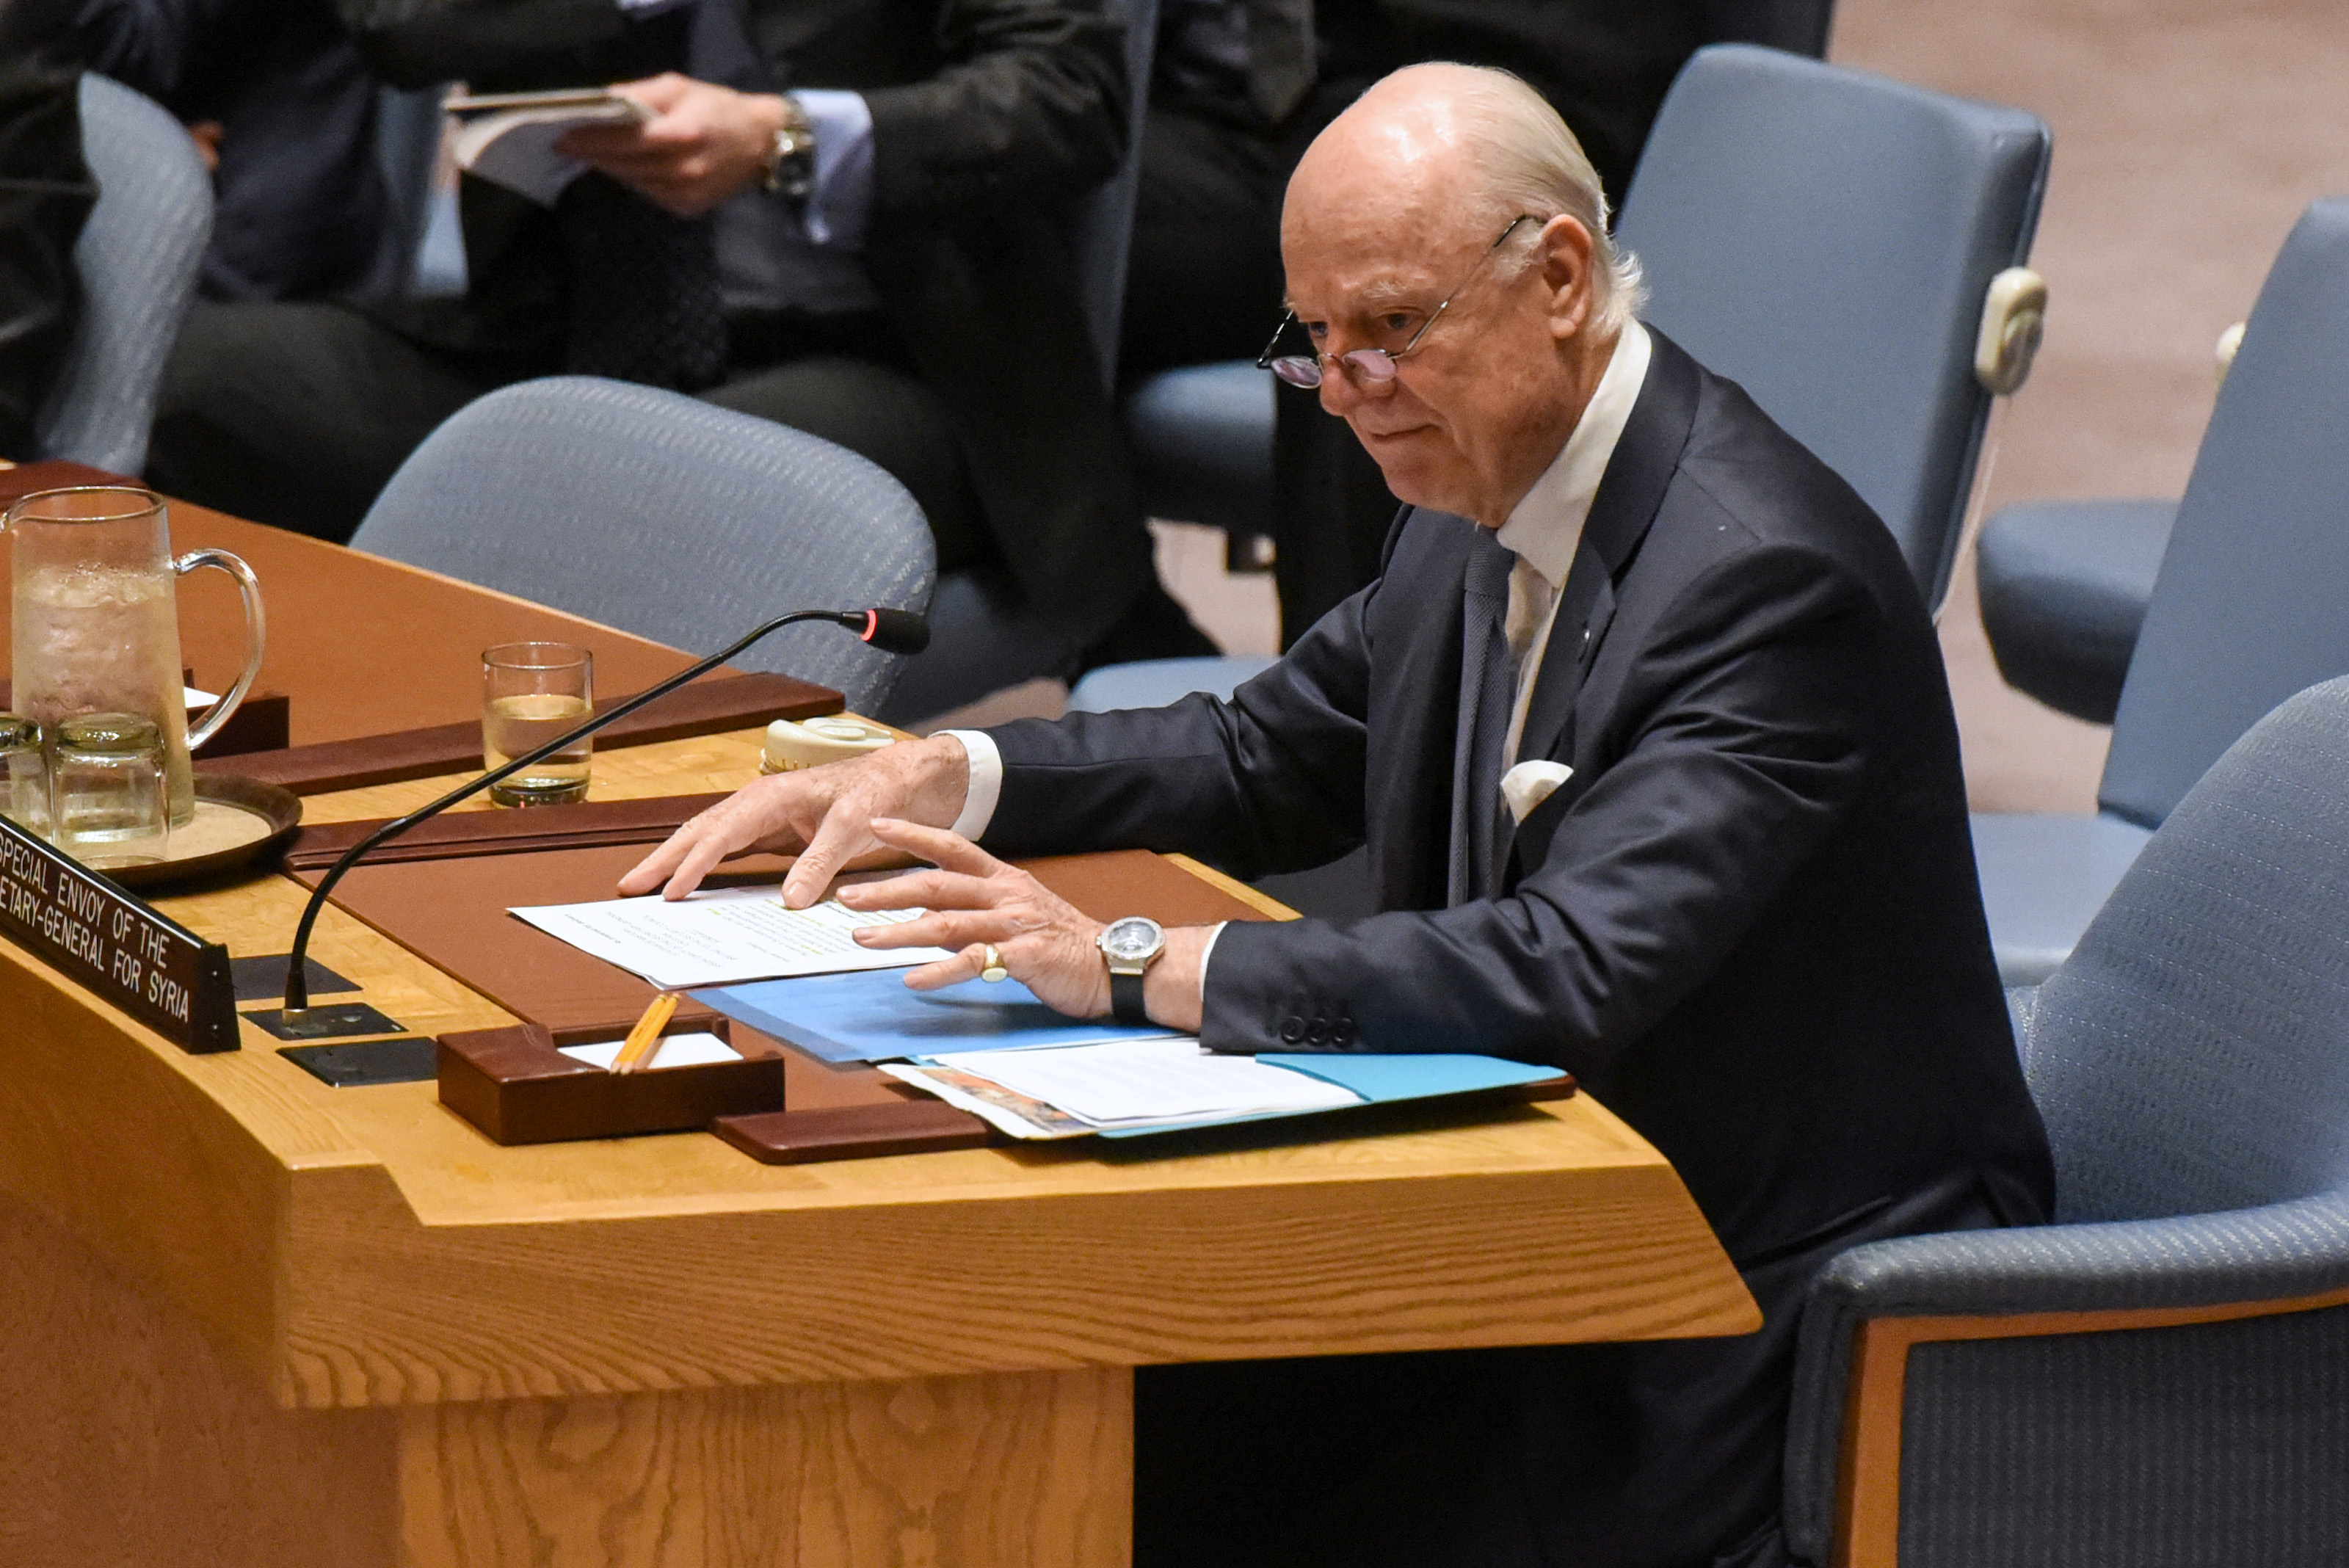 FILE - U.N. Special Envoy to Syria Staffan de Mistura delivers remarks at a Security Council meeting on the situation in Syria at the United Nations headquarters in New York, April 12, 2017.